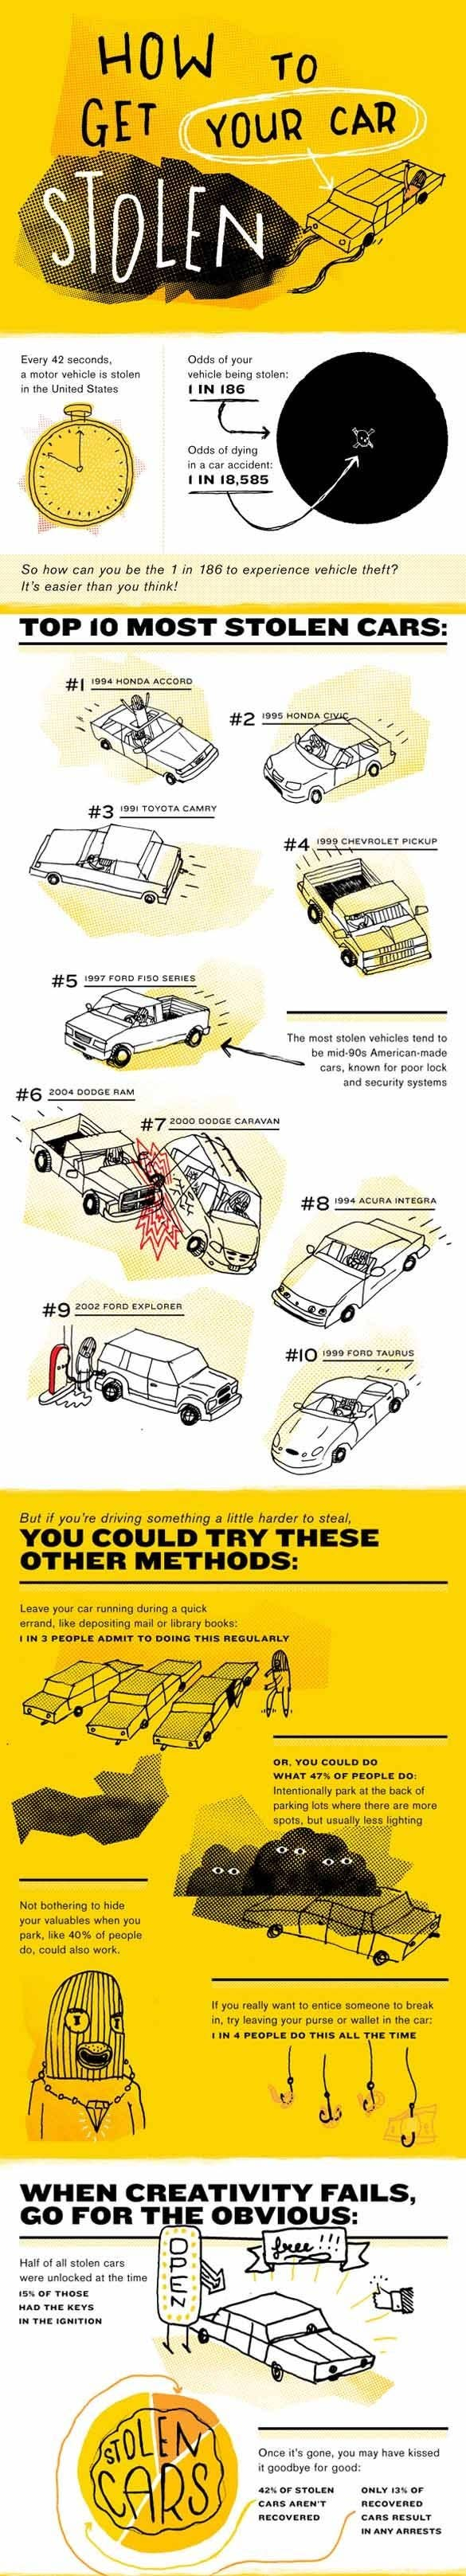 21 Genius Car Cheat Sheets Every Driver Needs To See 1999 Honda Civic Horn Location 11 How Not Get Jacked